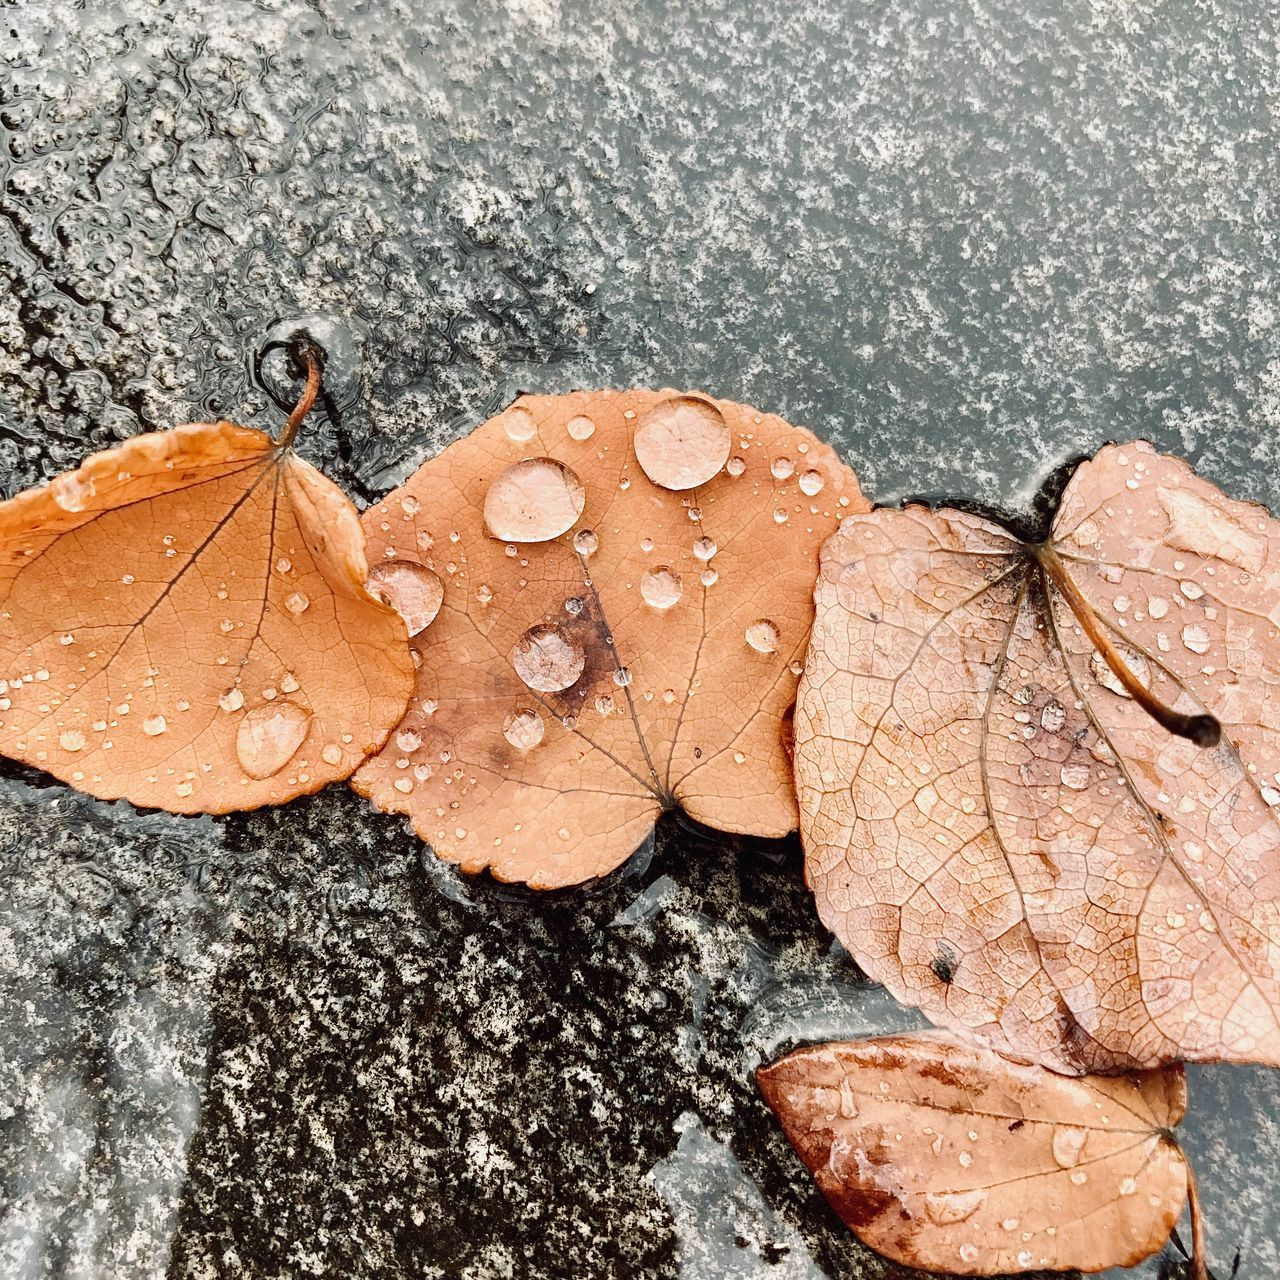 HIGH ANGLE VIEW OF WET DRY LEAVES DURING AUTUMN